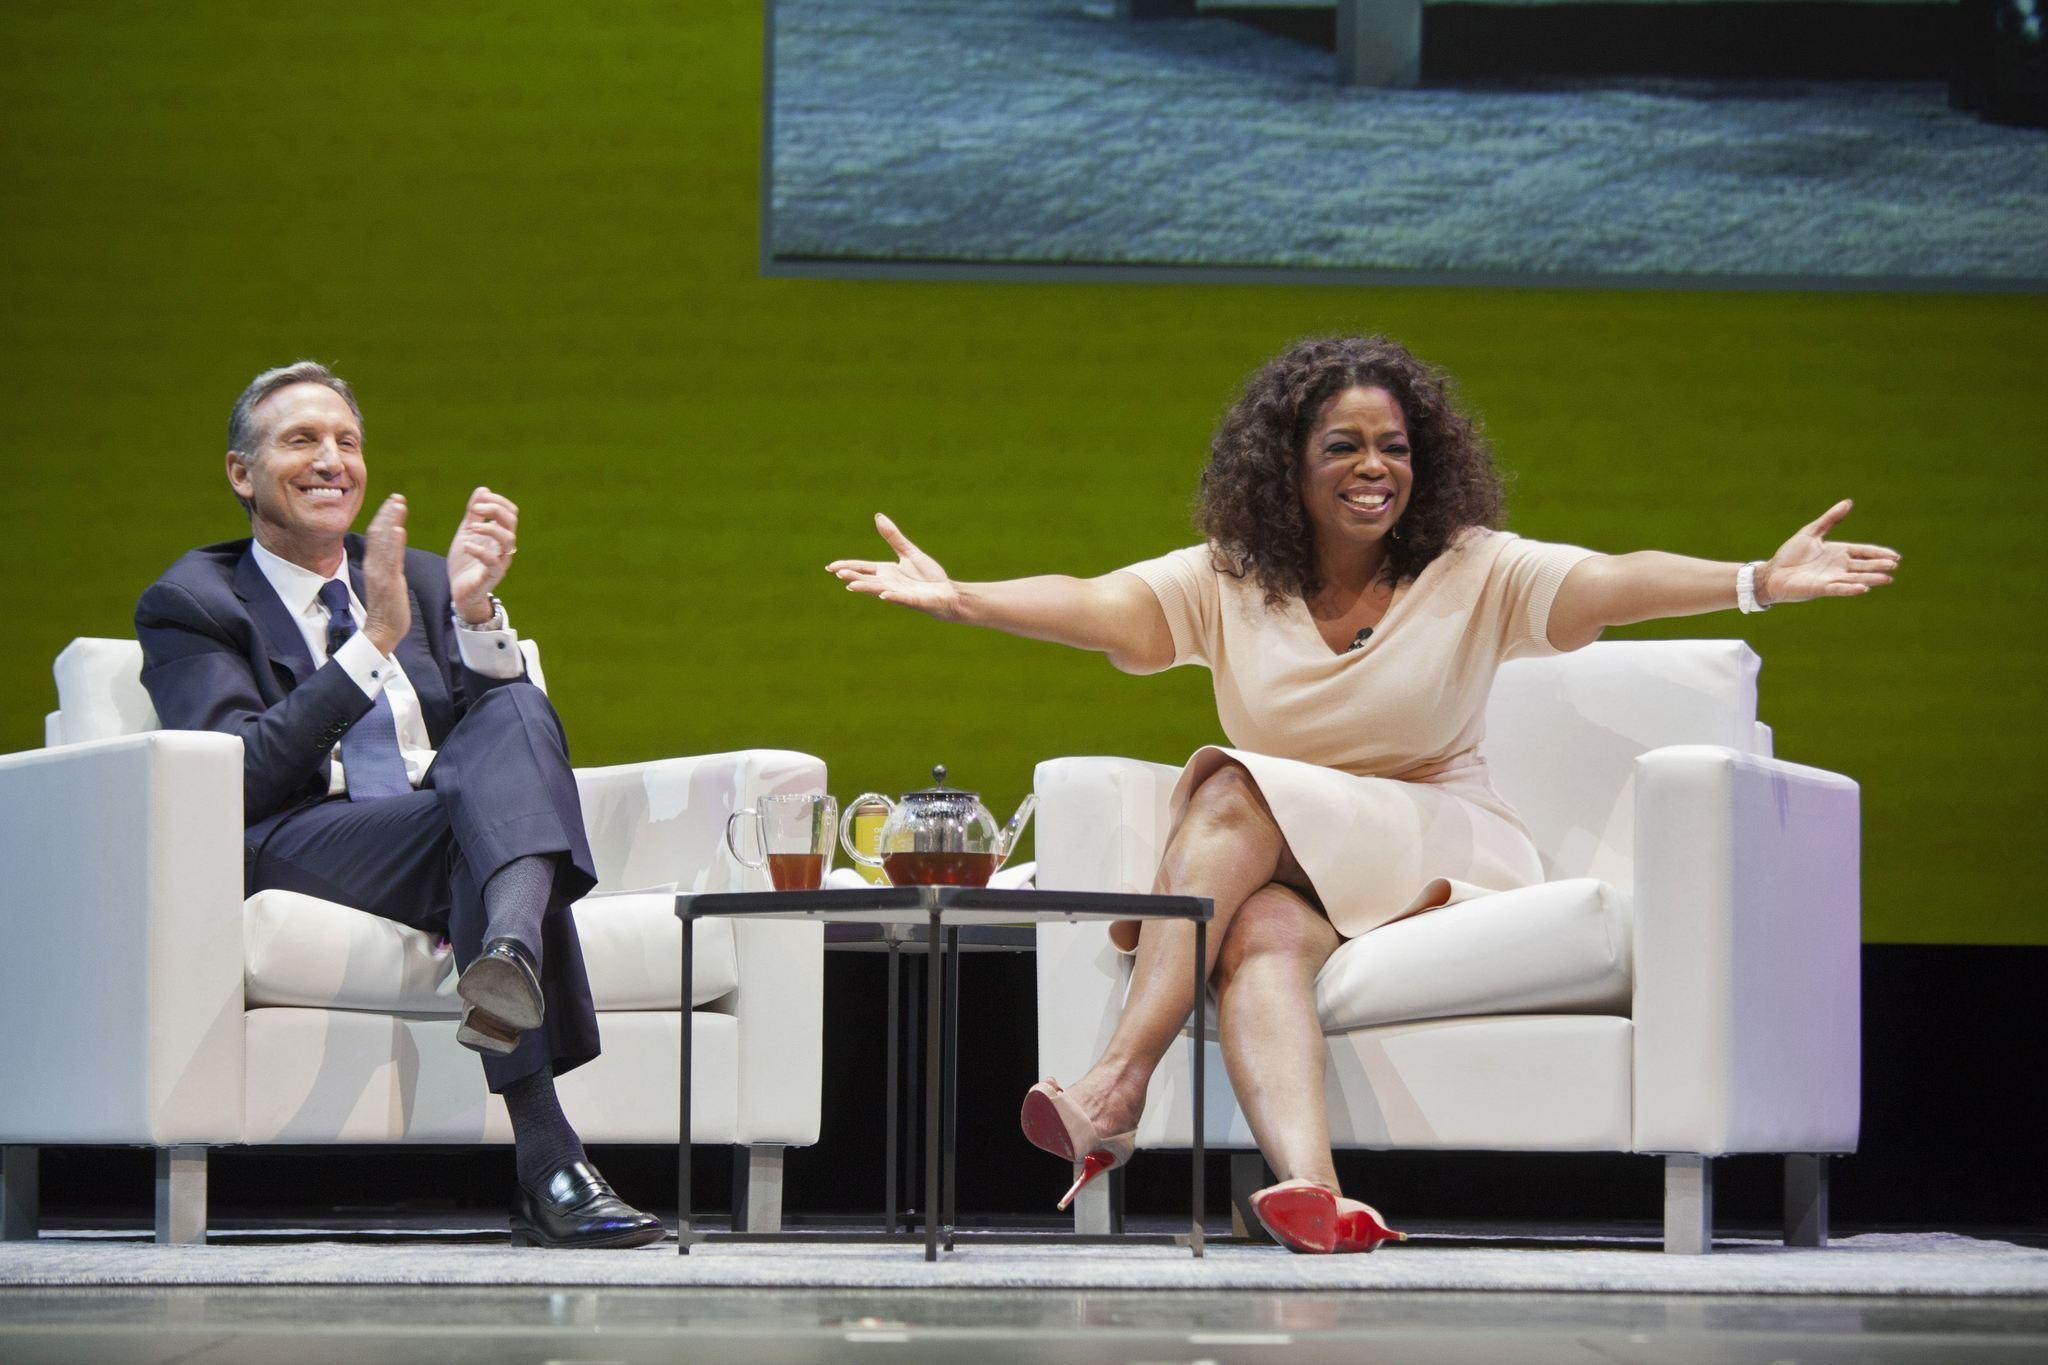 Howard Schultz, CEO of Starbucks, applauds on stage next to surprise guest Oprah Winfrey during the company's annual shareholders meeting in Seattle, Washington on March 19.